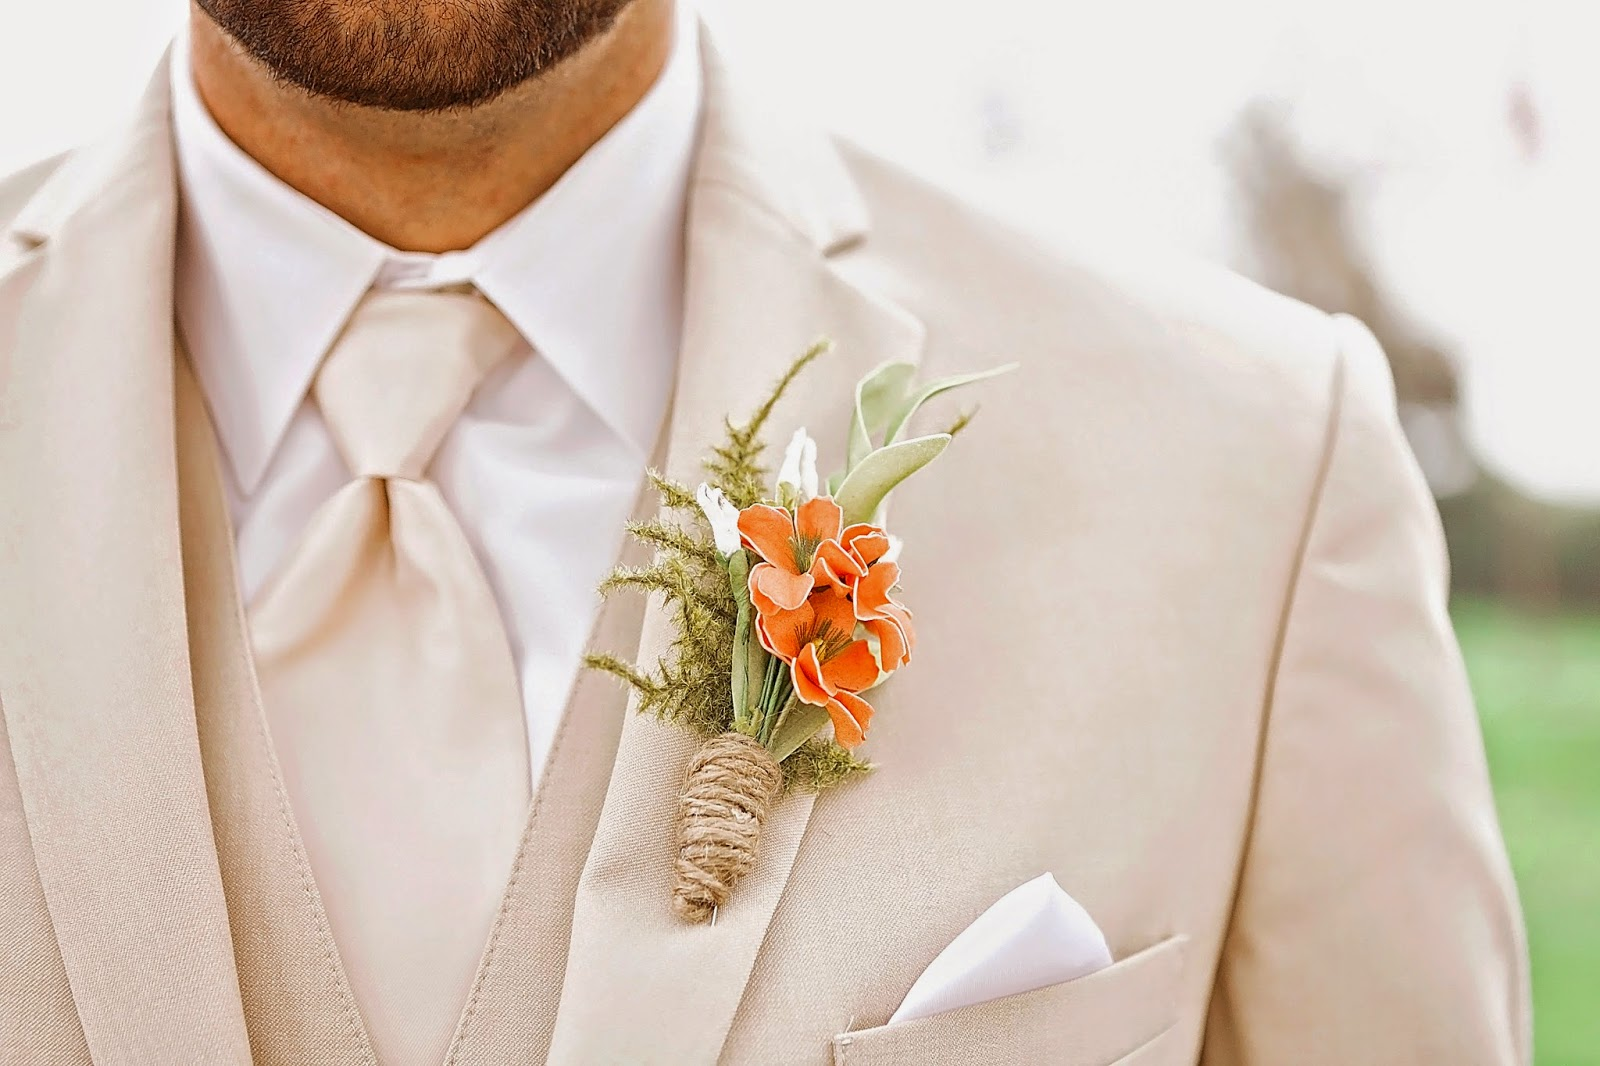 diy boutonnieres, coral boutonnieres, make your own boutonnieres, rustic boutonnieres, diy rustic boutonnieres